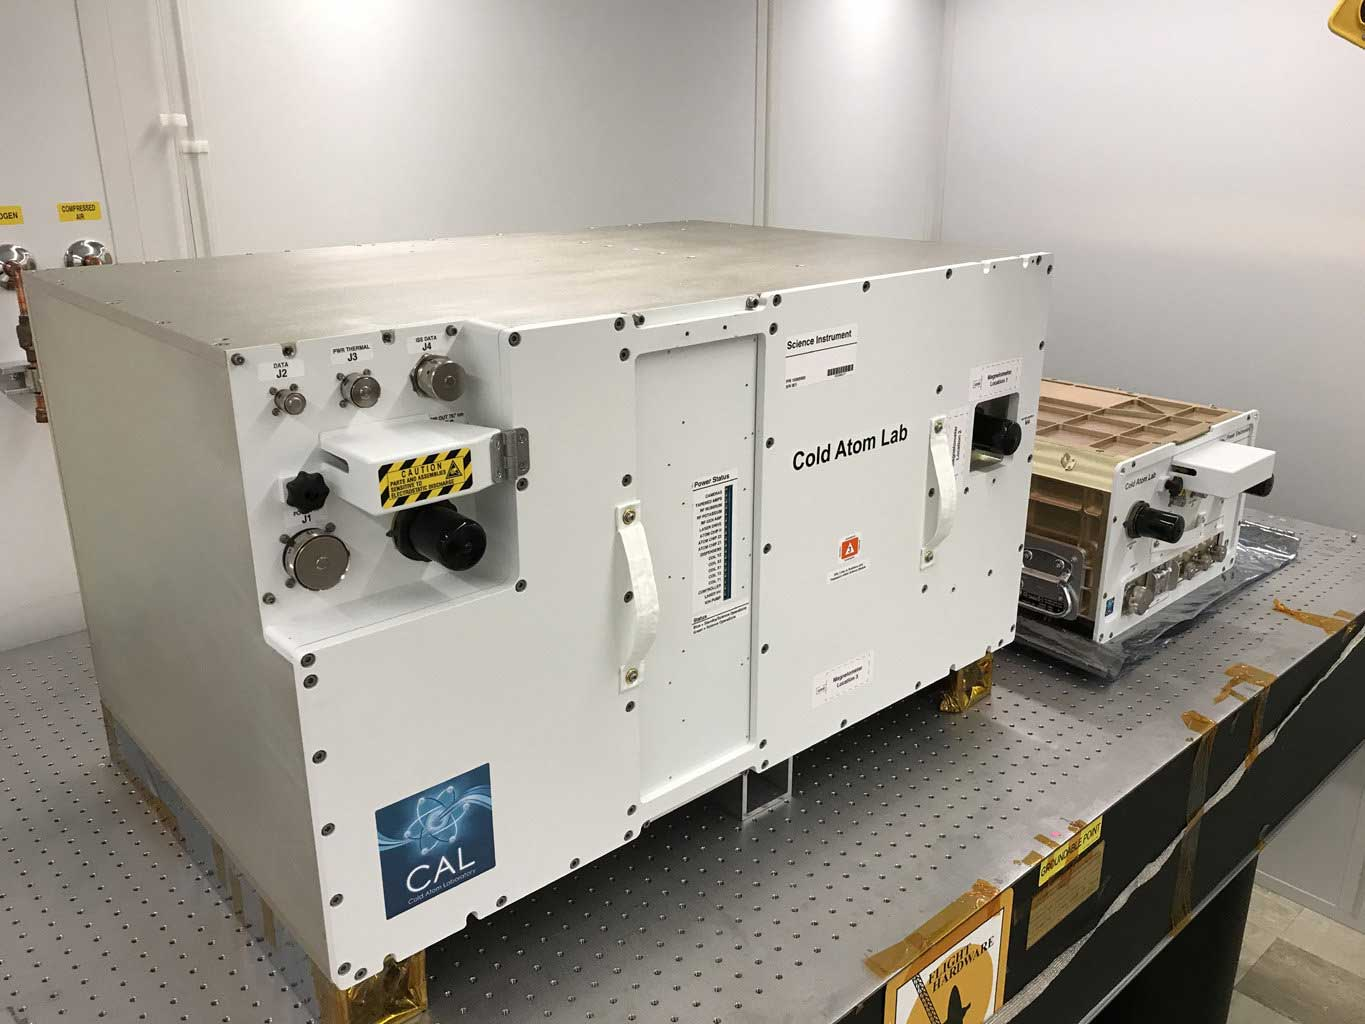 The Cold Atom Laboratory (CAL) consists of two standardized containers that will be installed on the International Space Station. The larger container holds CAL's physics package, or the compartment where CAL will produce clouds of ultracold atoms. Credit: NASA/JPL-Caltech